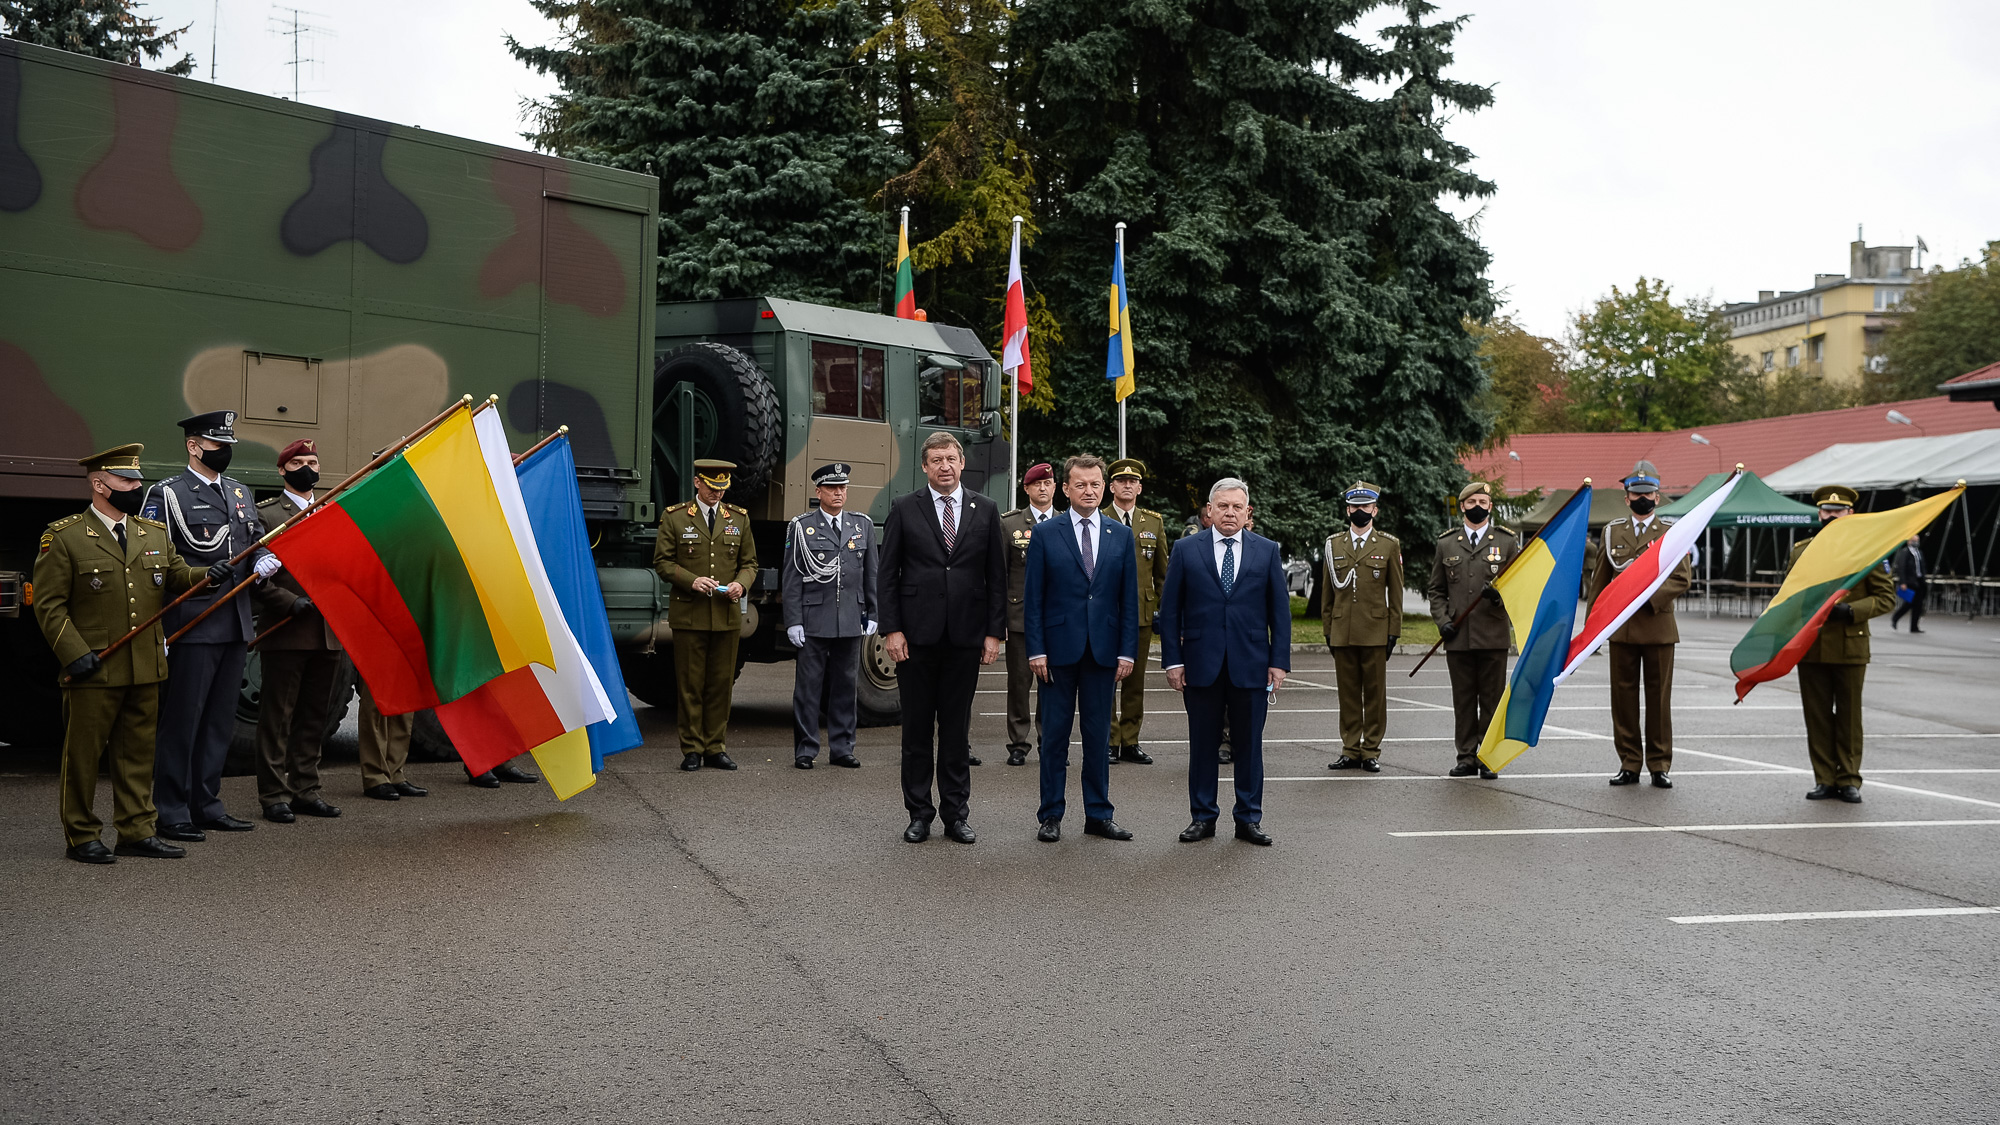 WI Daily News – Polish, Ukrainian and Lithuanian defence ministers met in Lublin